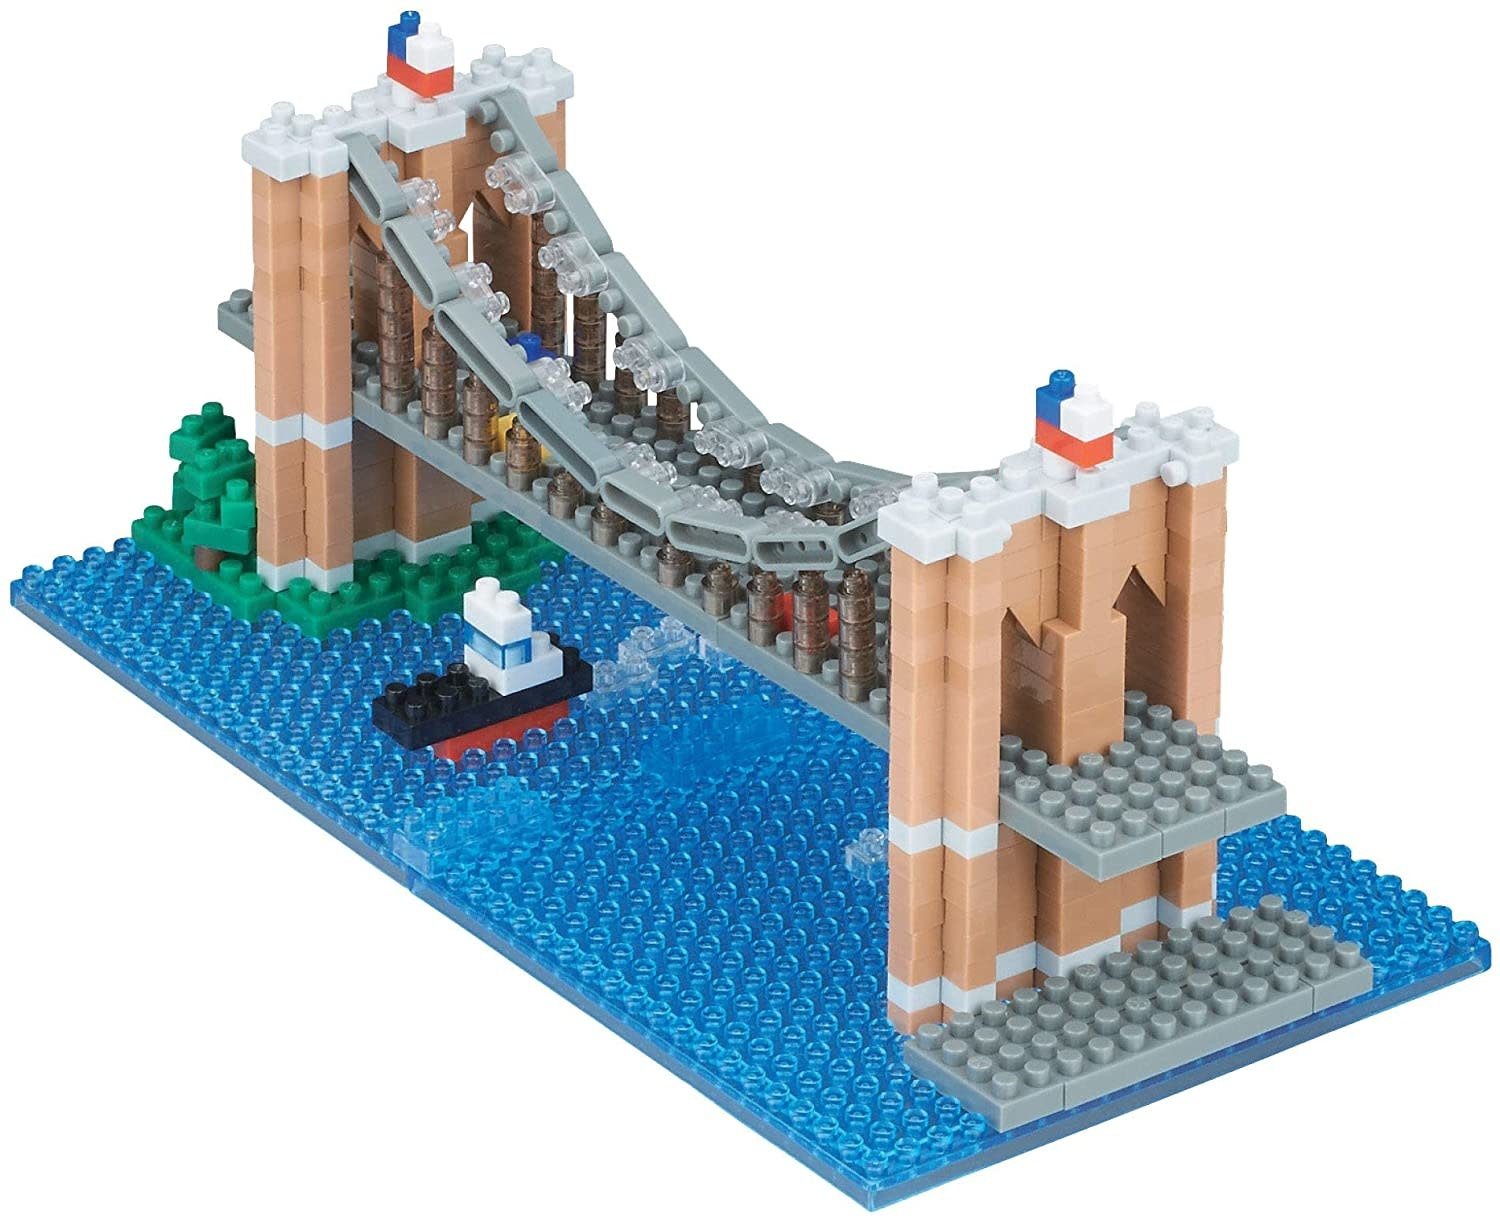 NANO BLOCK Brooklyn Bridge Building Set - NANO BLOCKS